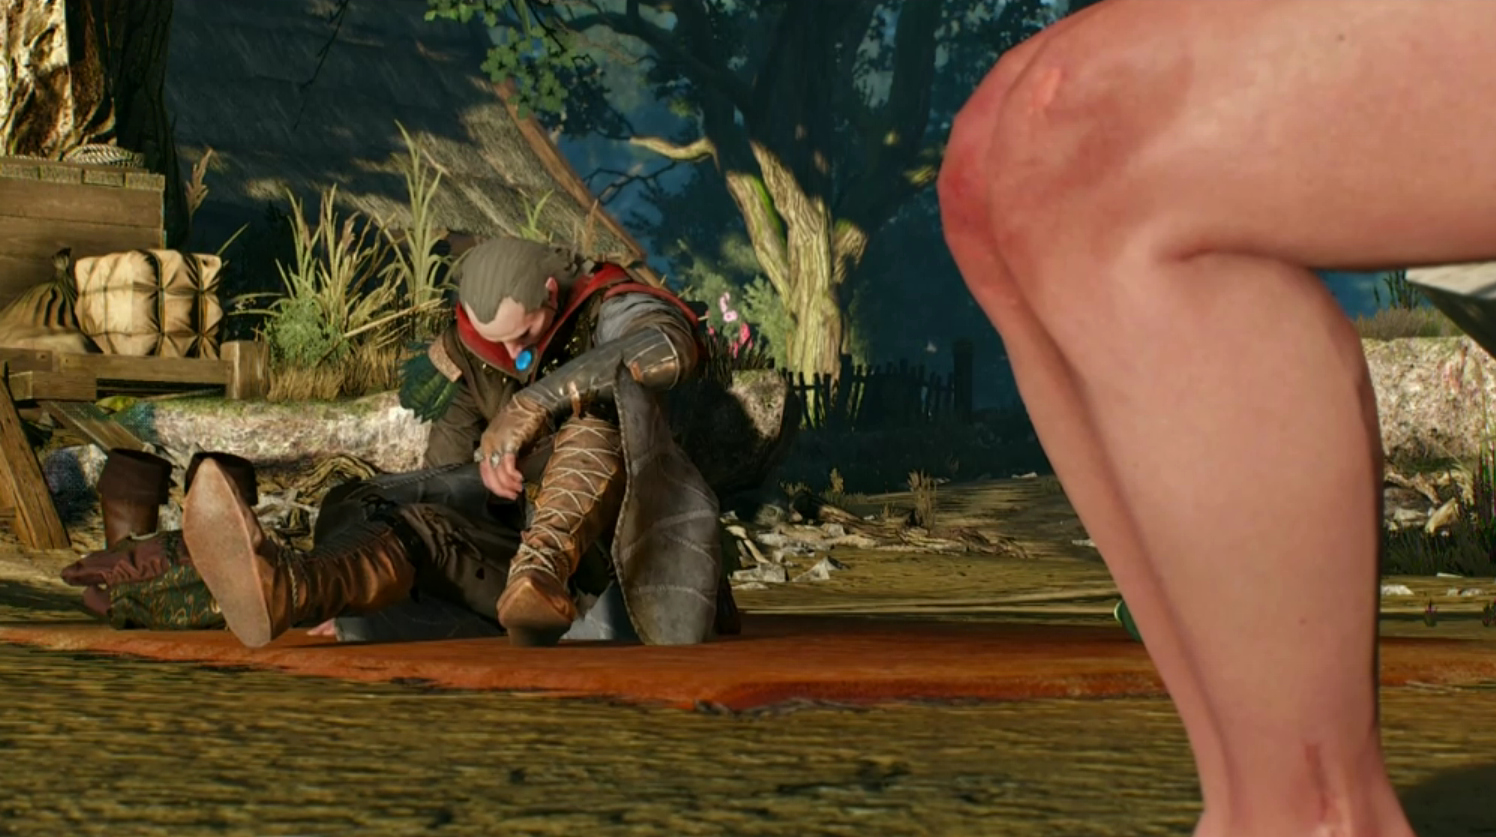 *Avallac'h, dazed and frightened, on the shore by the lake, after Ciri raped him.*